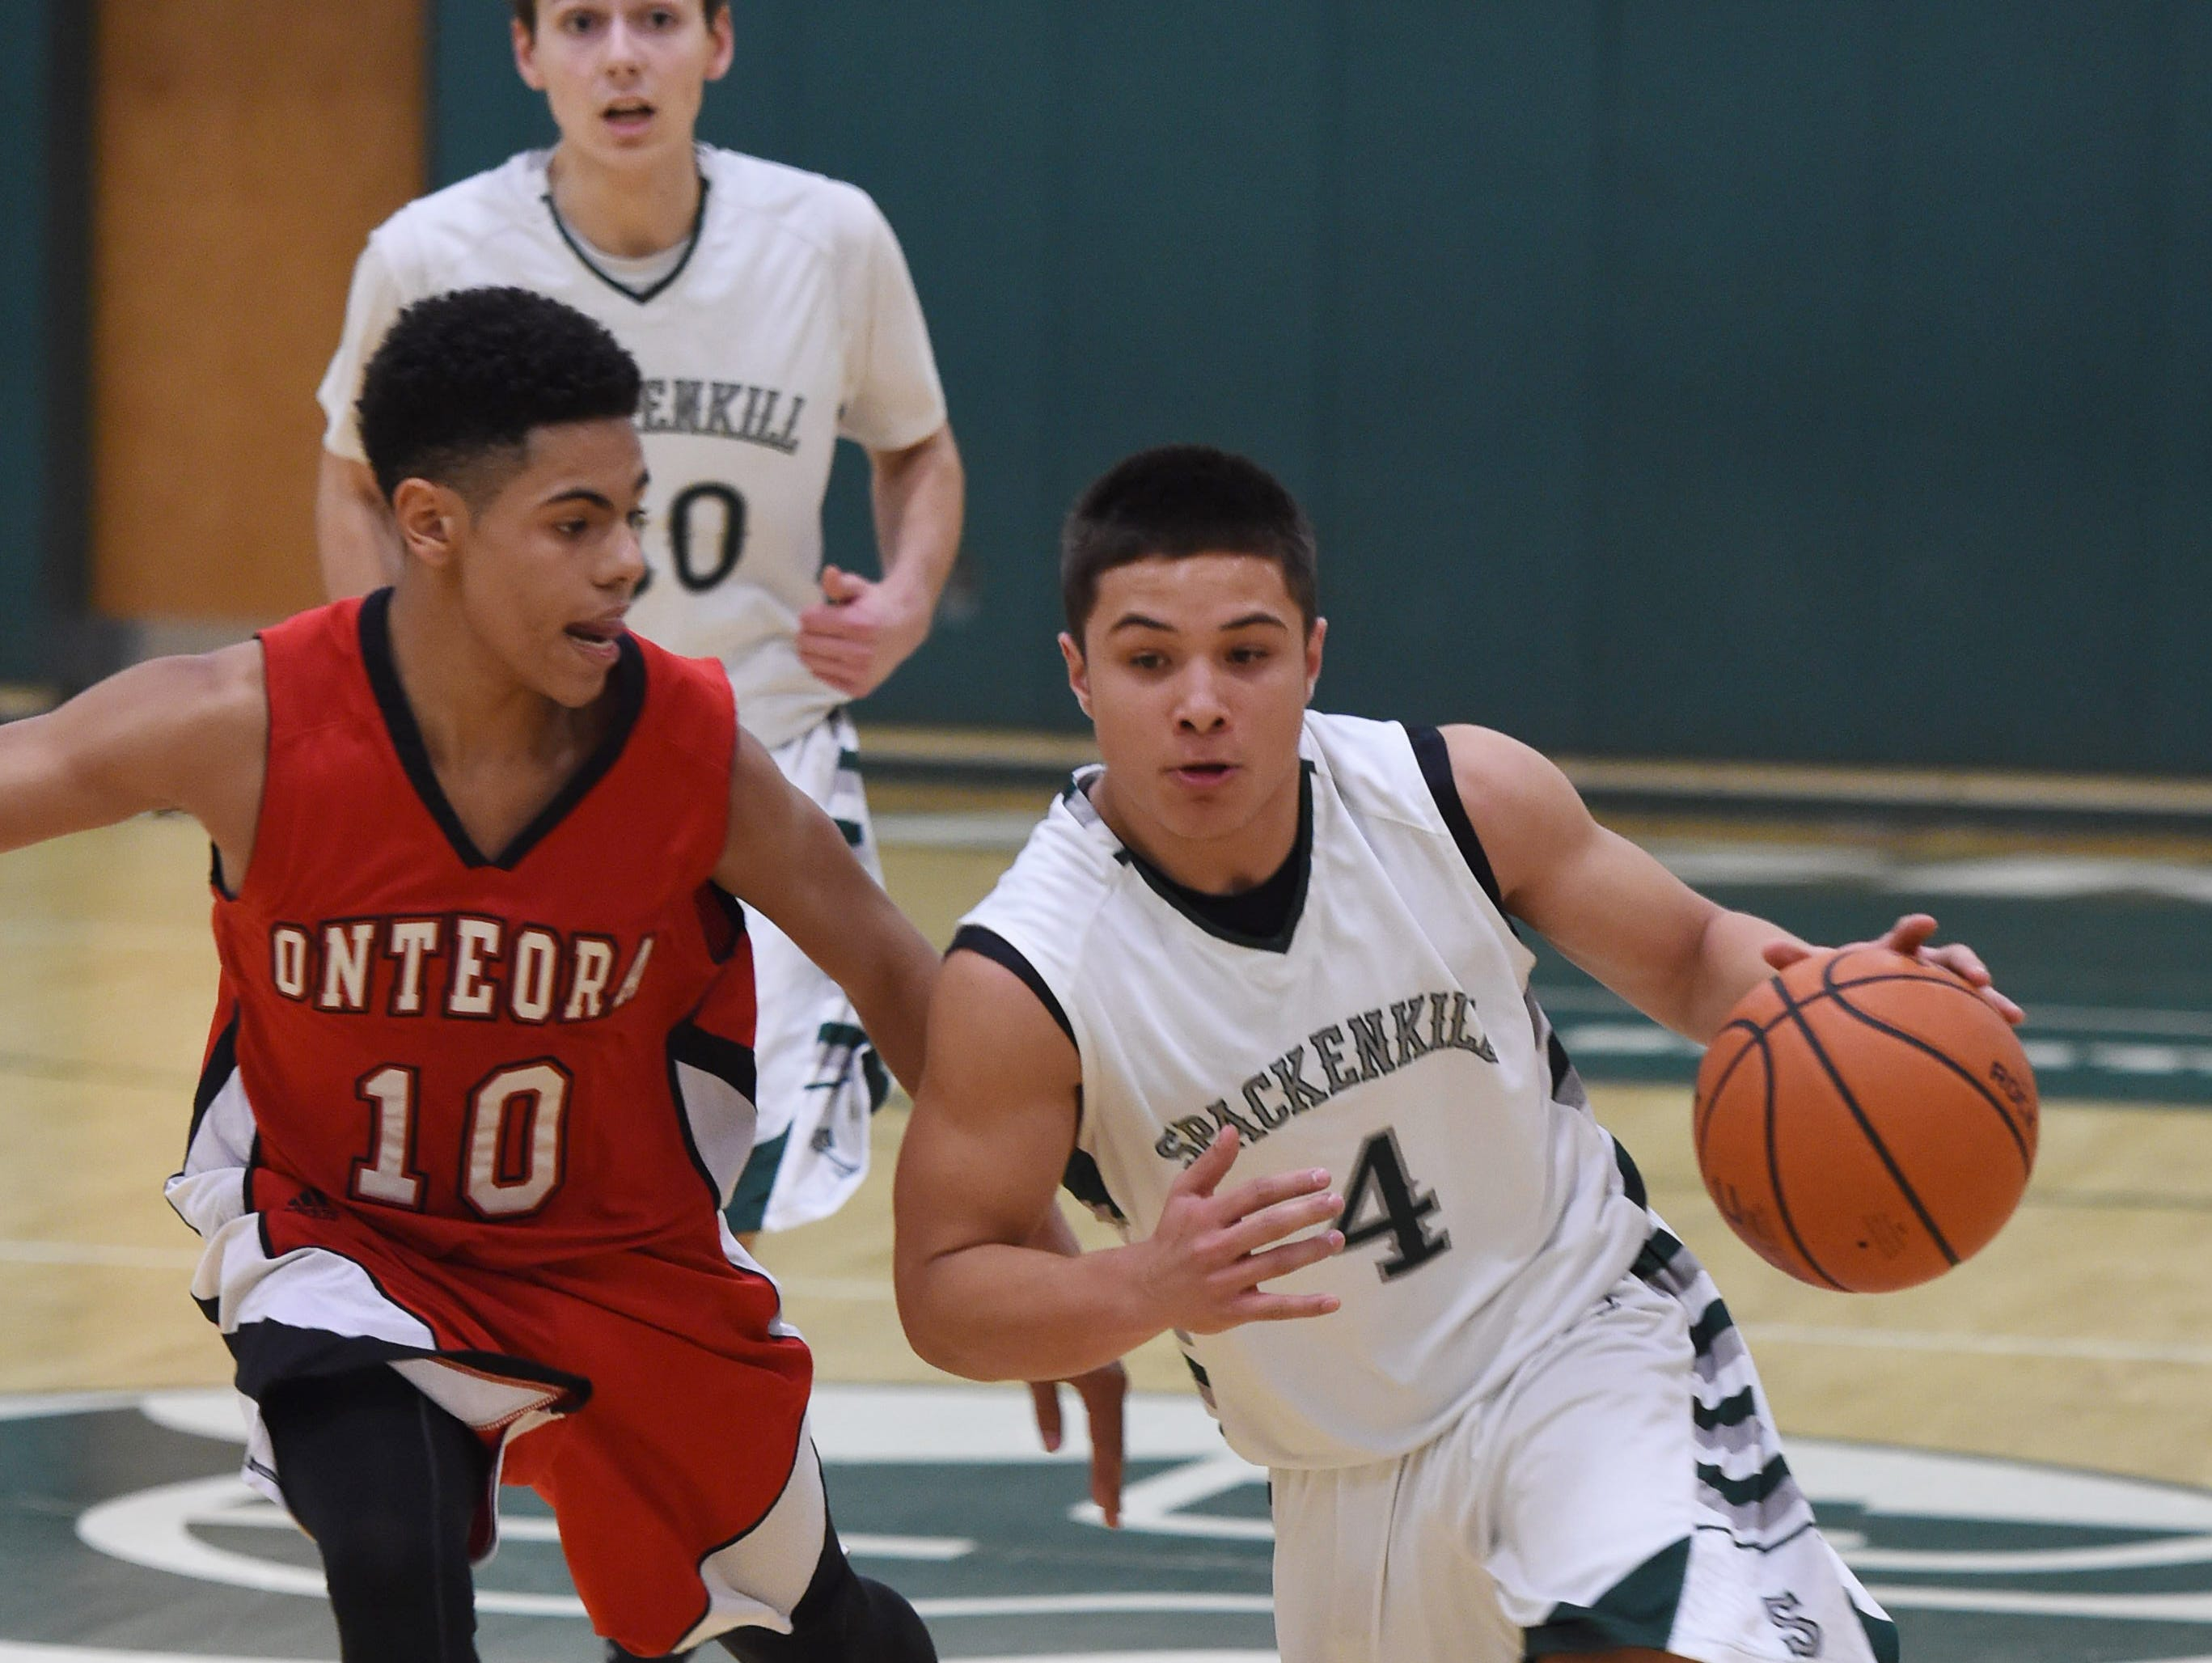 Spackenkill's Camron Abalos drives to the net past Onteora's, Jameson Morton during Thursday's game at Spackenkill.